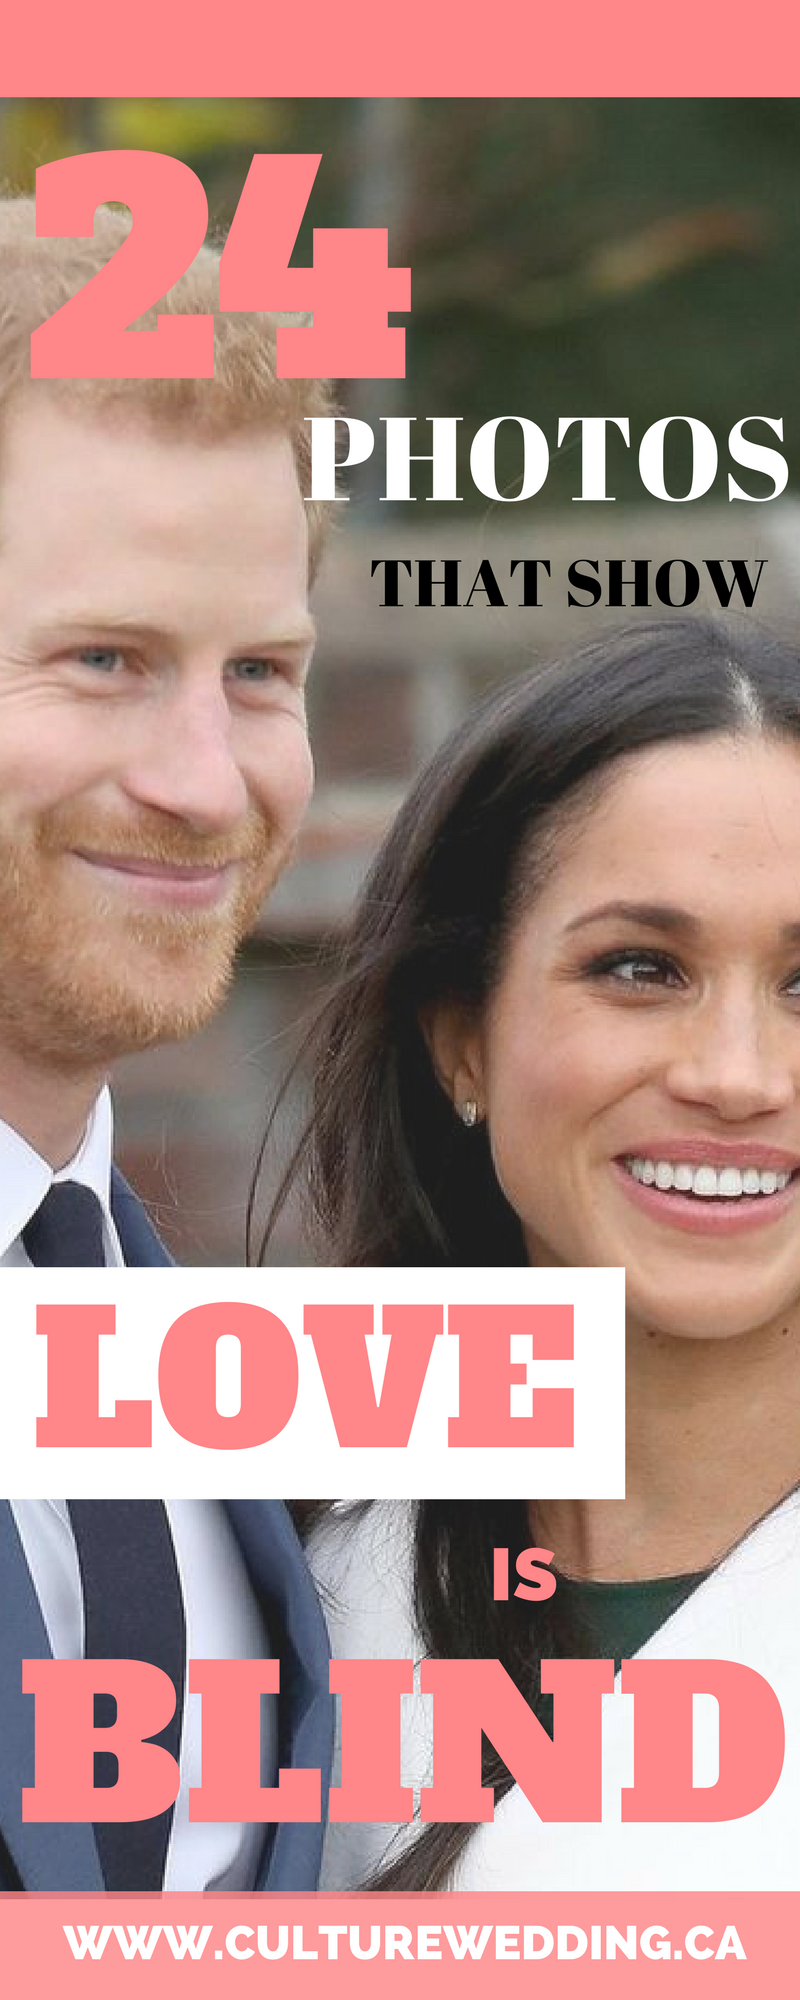 Prince Harry and Meghan Markle are engaged and they prove love is blind.